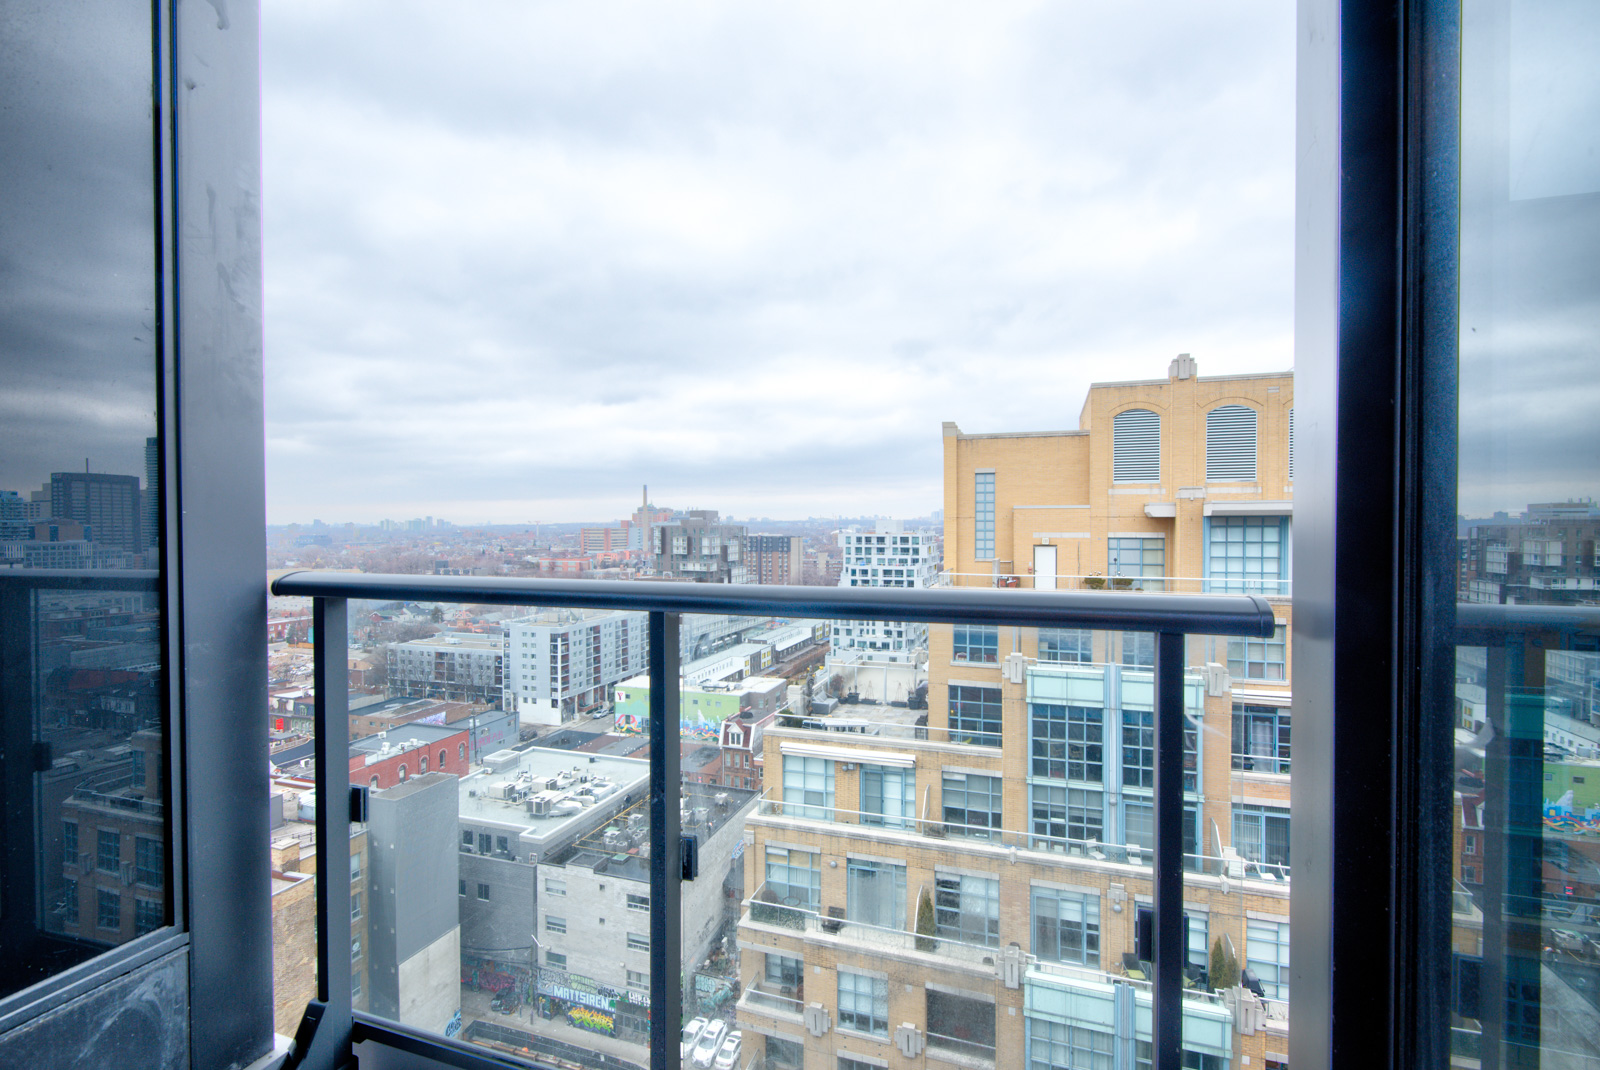 PH 101 balcony with glass panels overlooking buildings of the Fashion District.